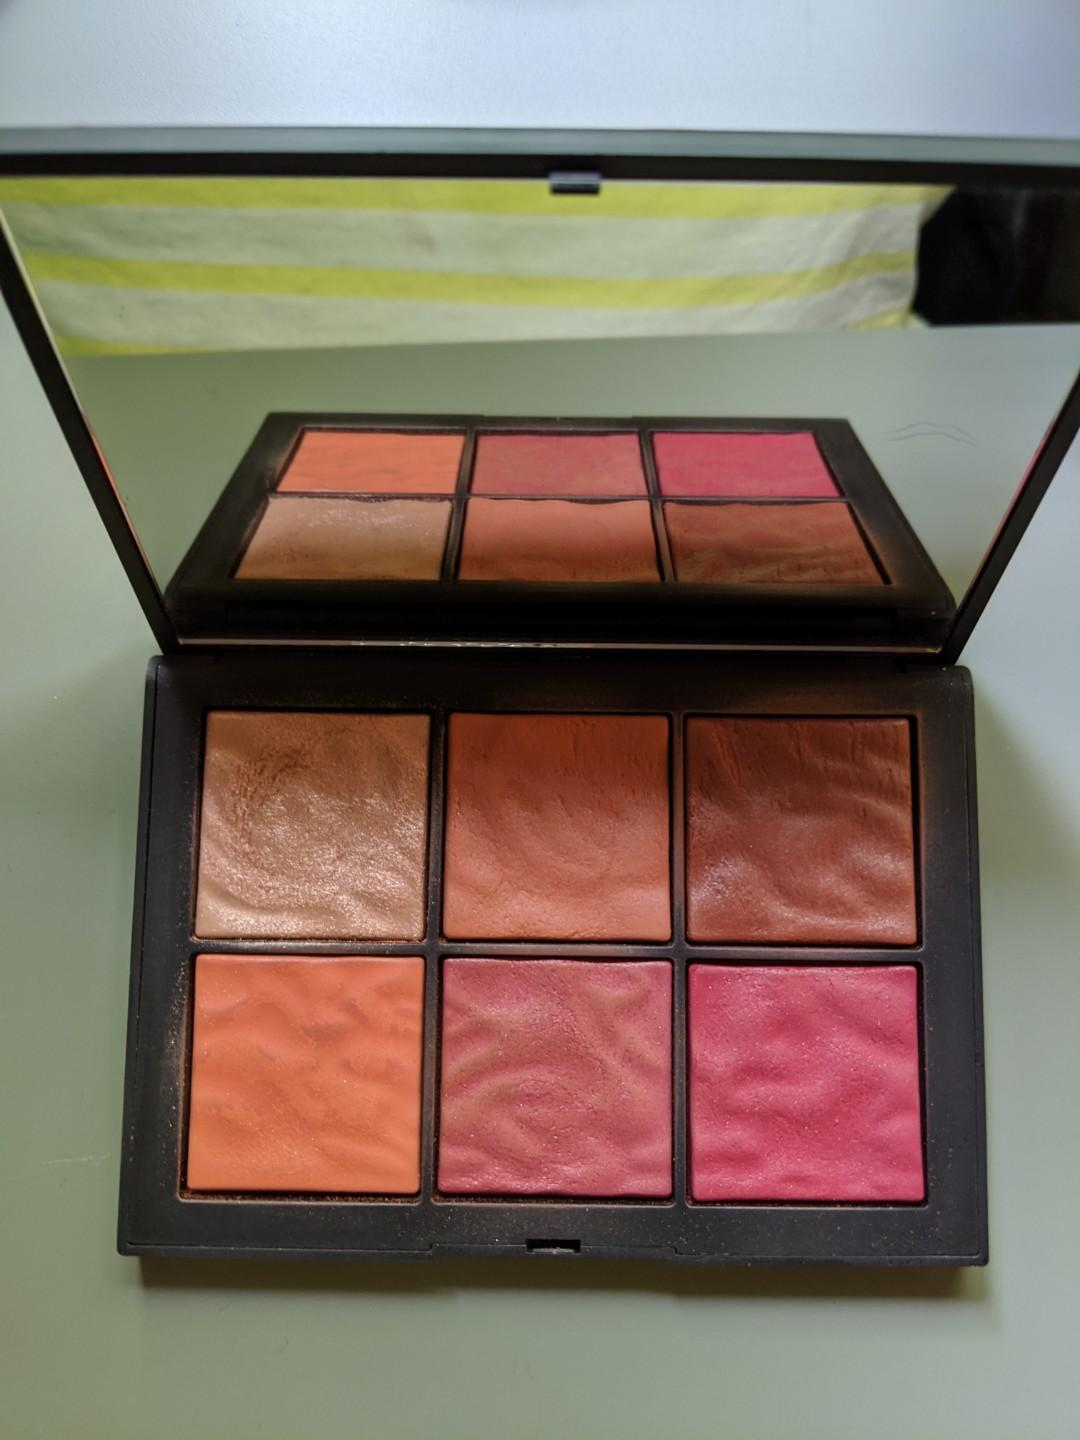 Nars Limited Release Exposed cheek palette blush palette